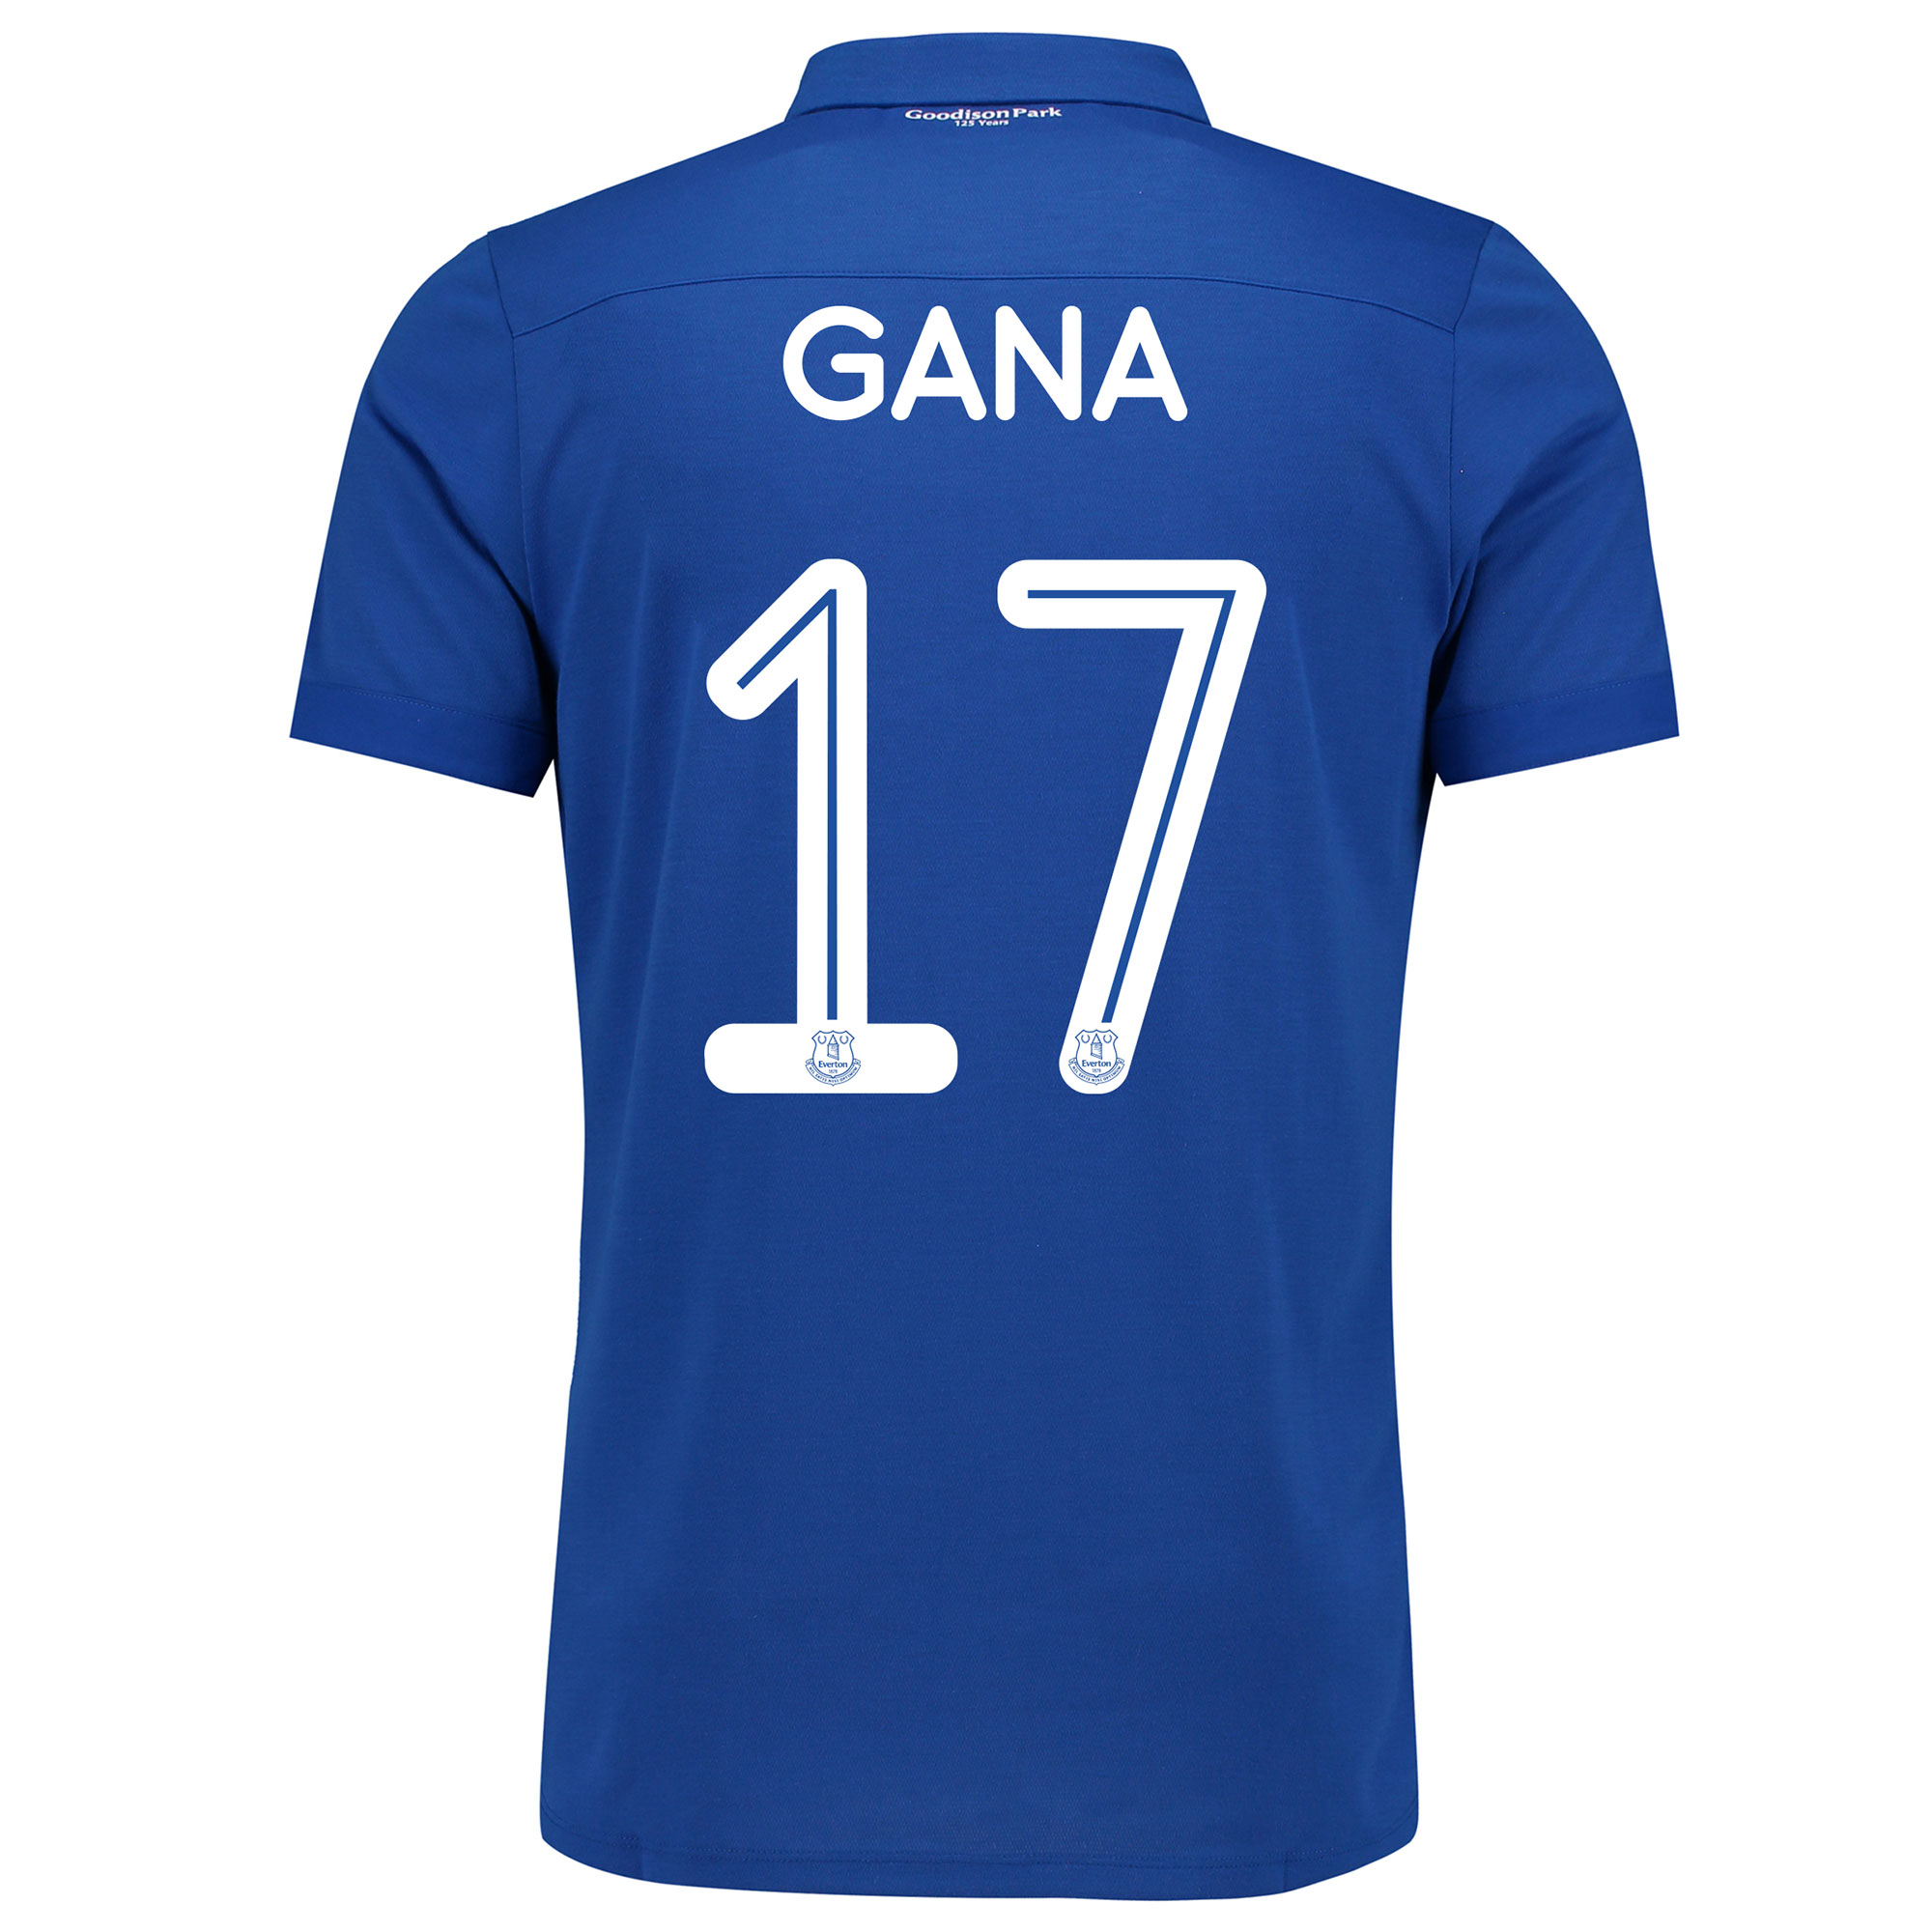 Image of Everton Commemorative Shirt with Gana 17 printing